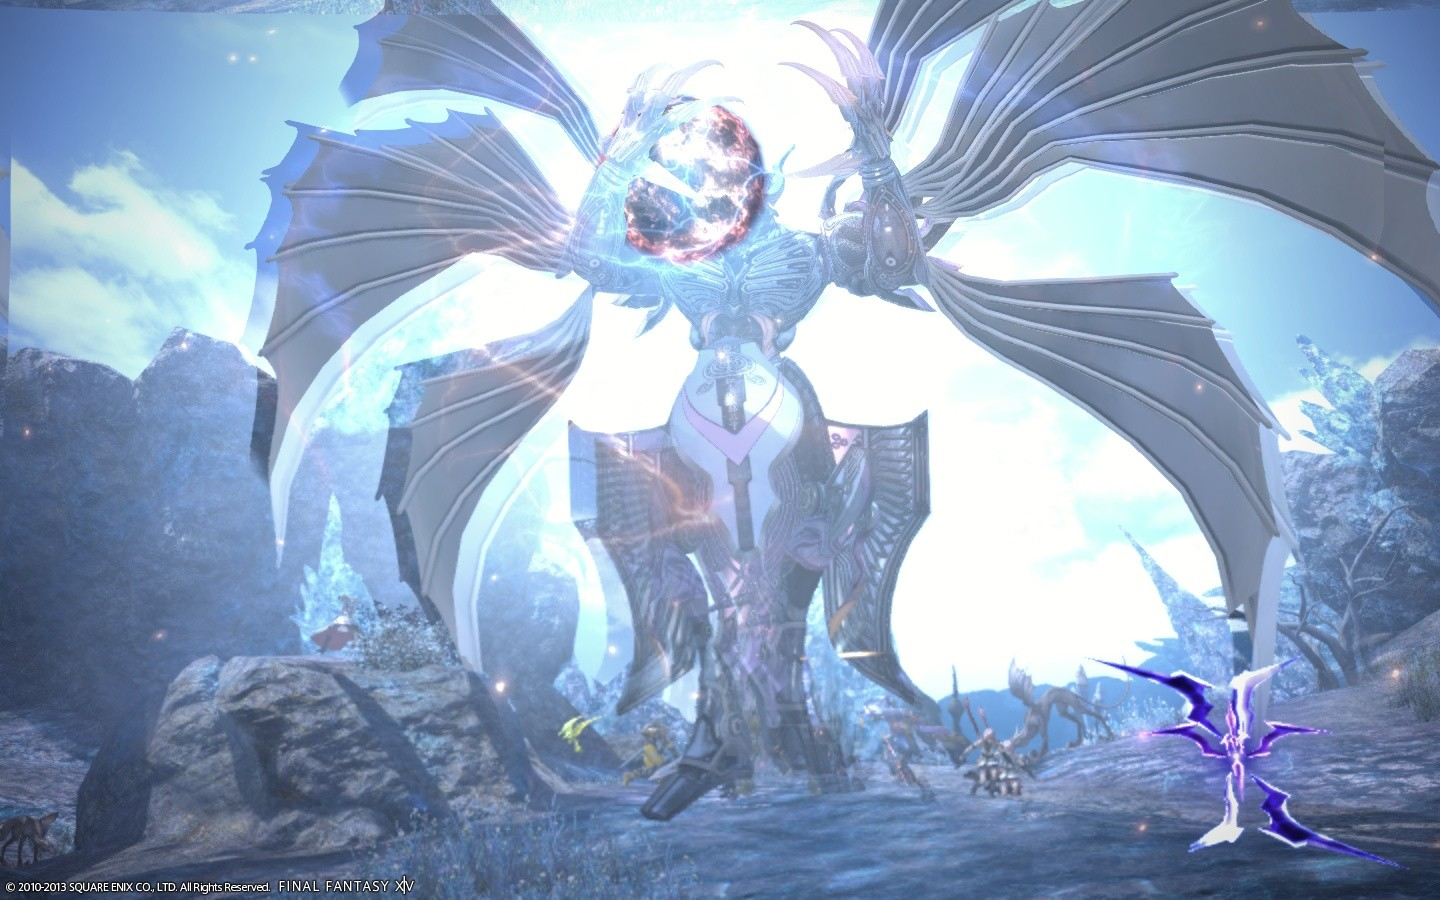 Final Fantasy XIV: A Realm Reborn - This is gonna hurt...